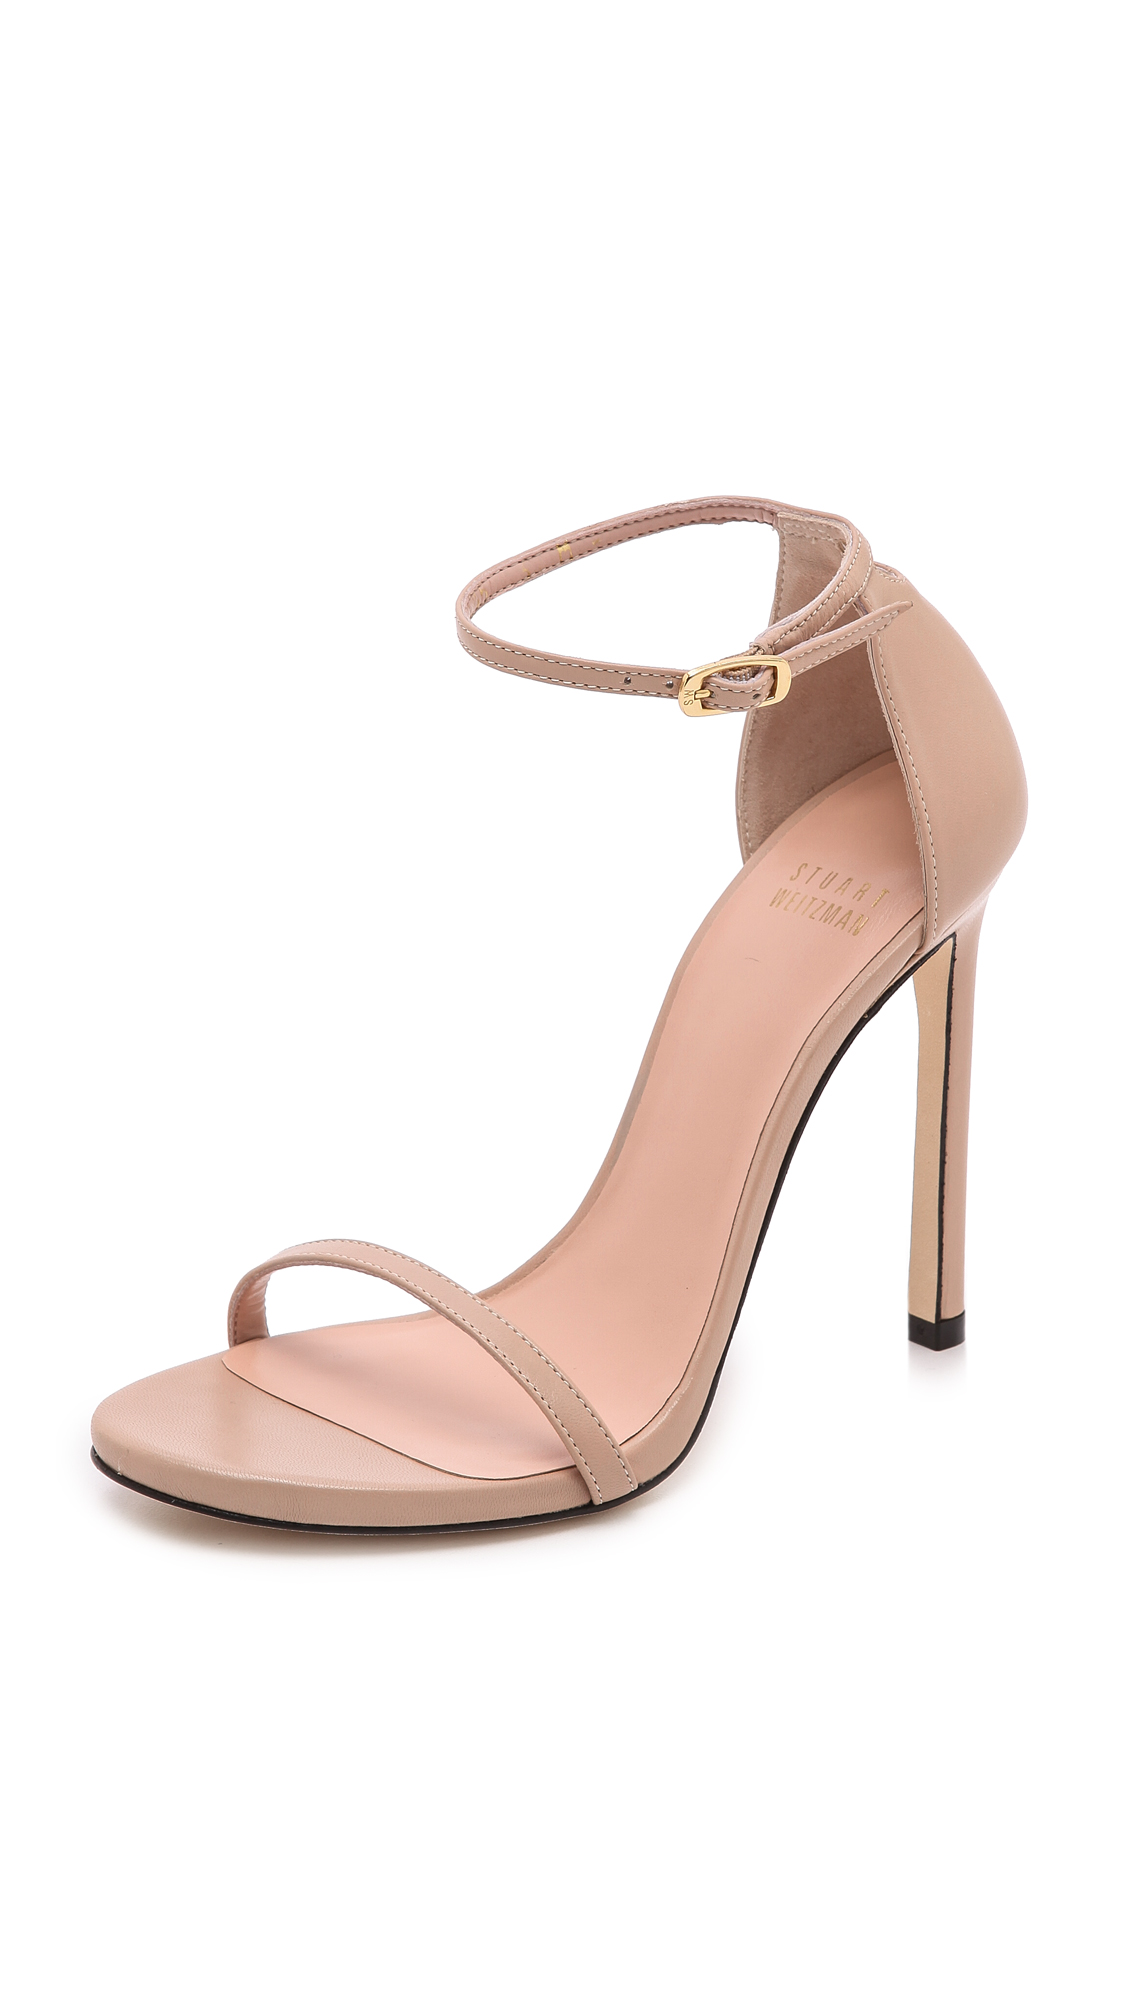 'Nudist Song' ankle strap patent leather sandals